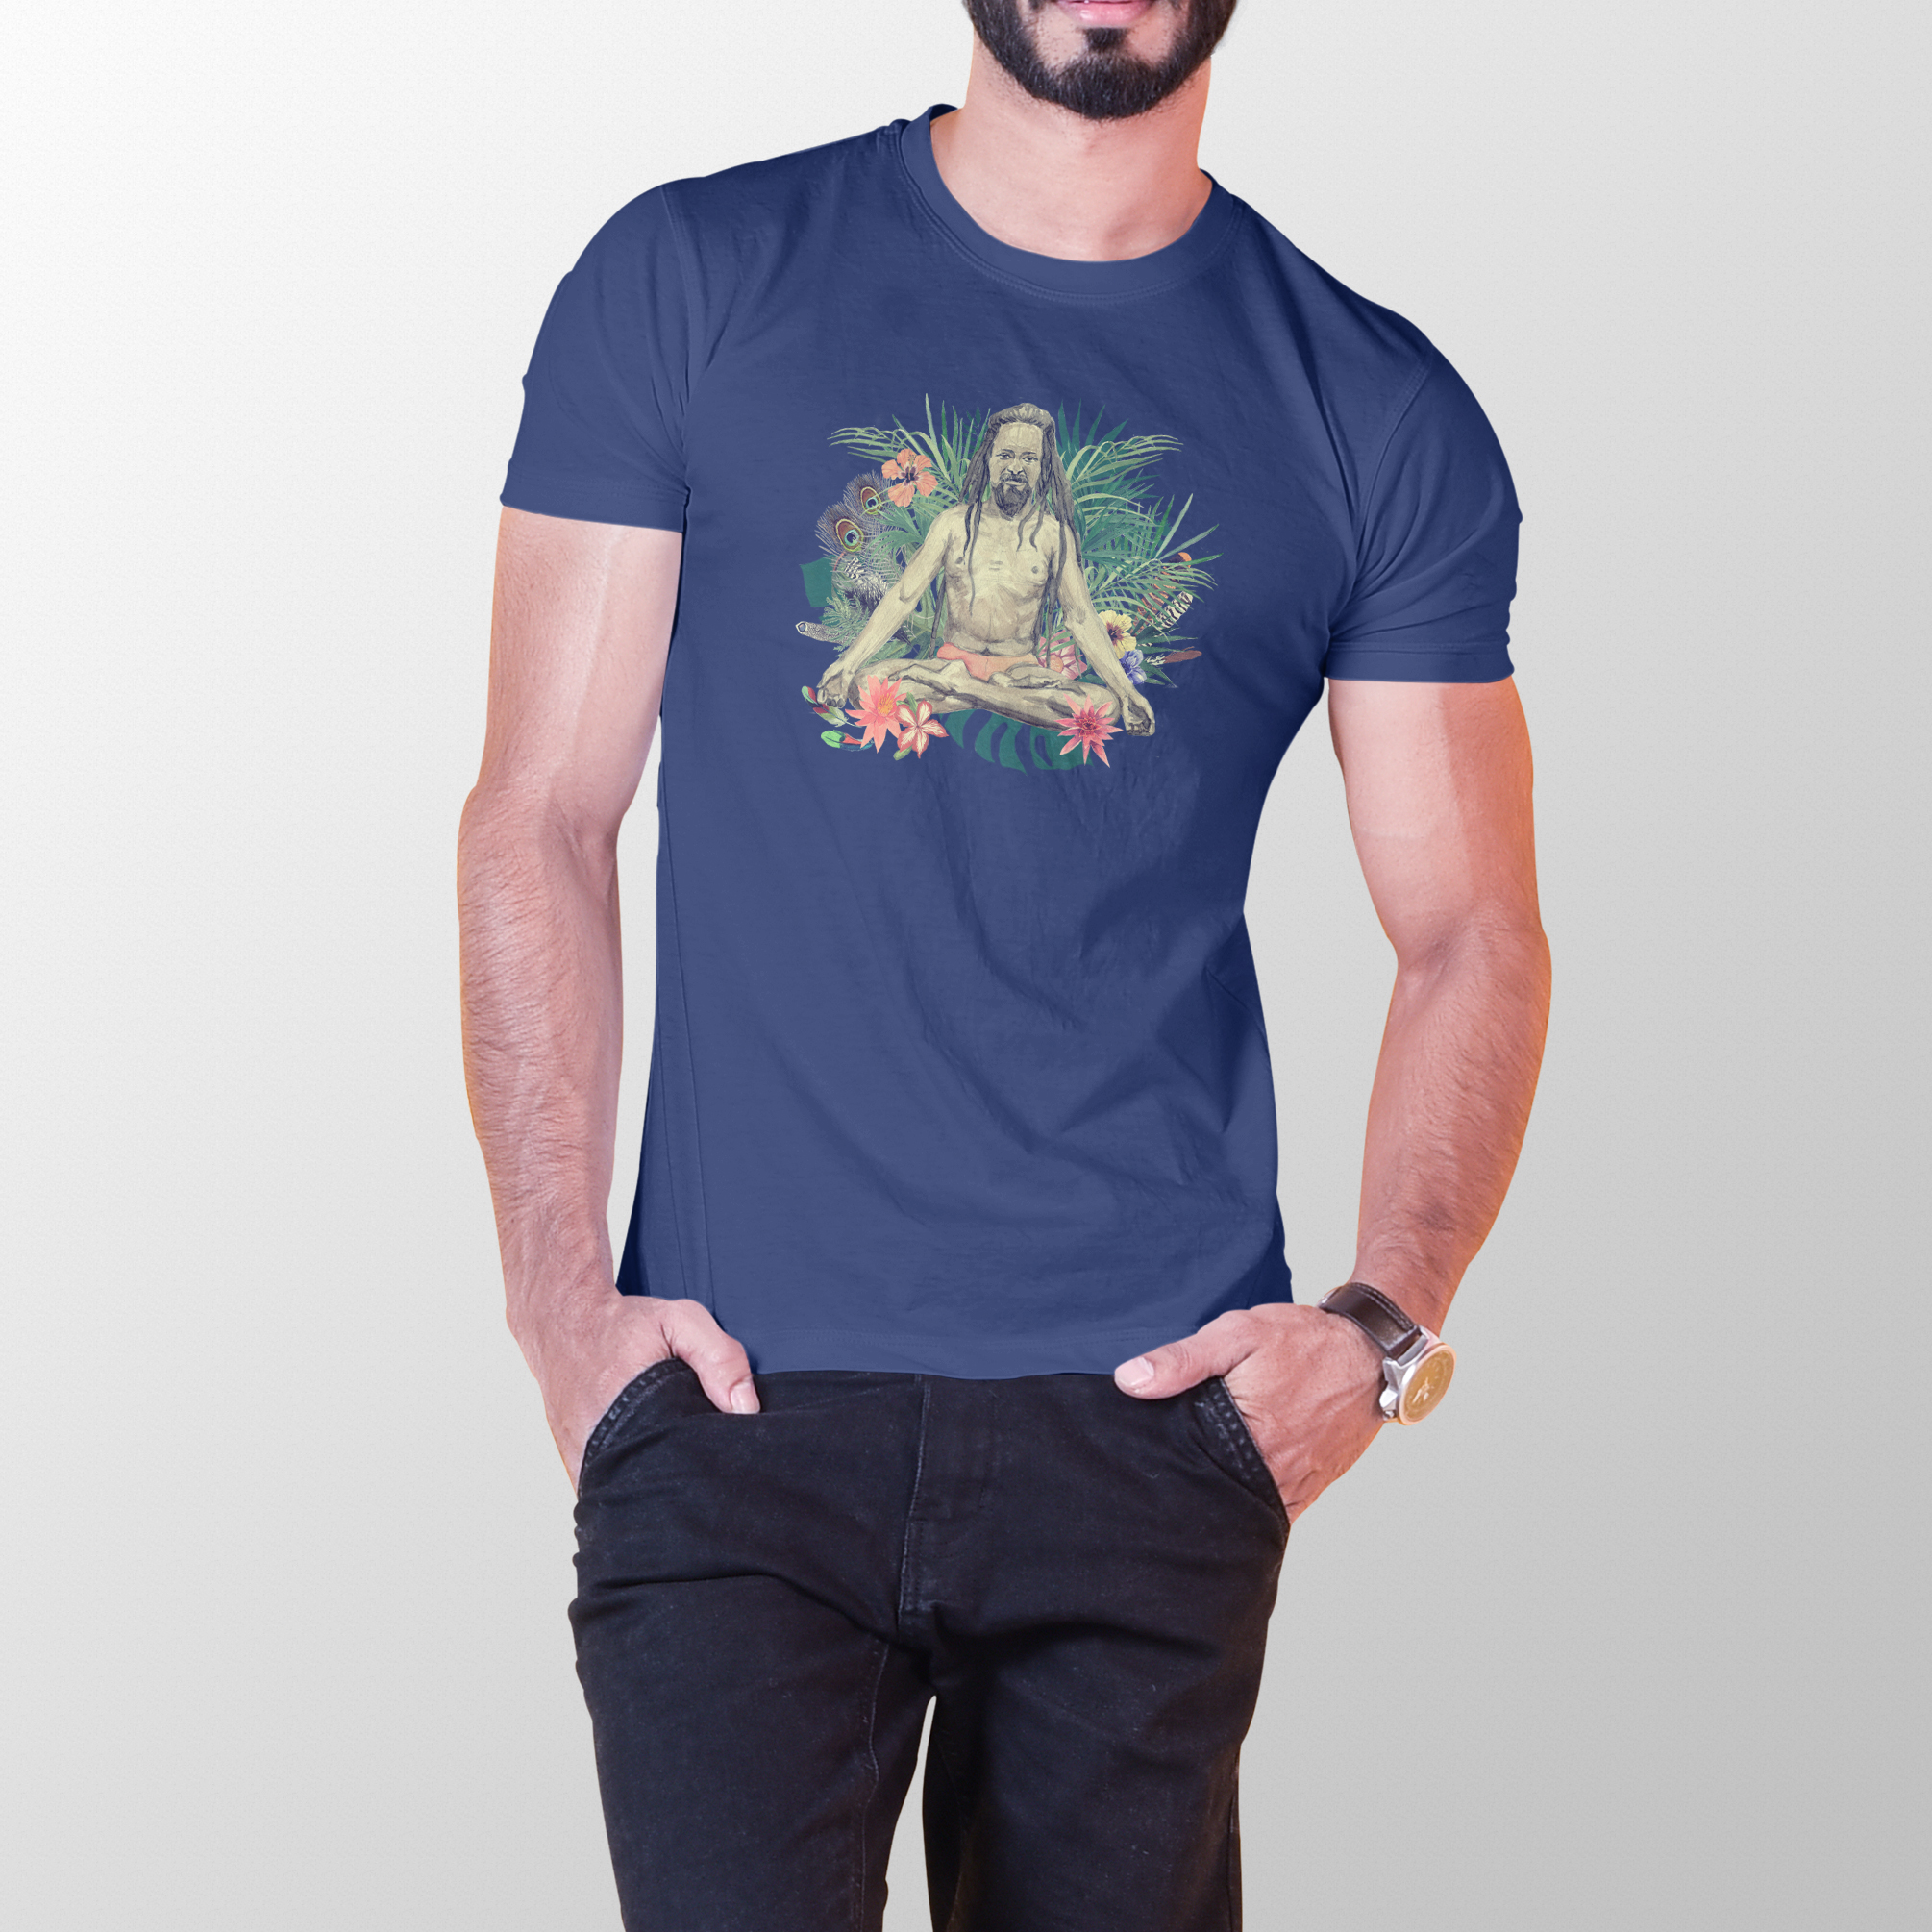 Baba T Shirts for men